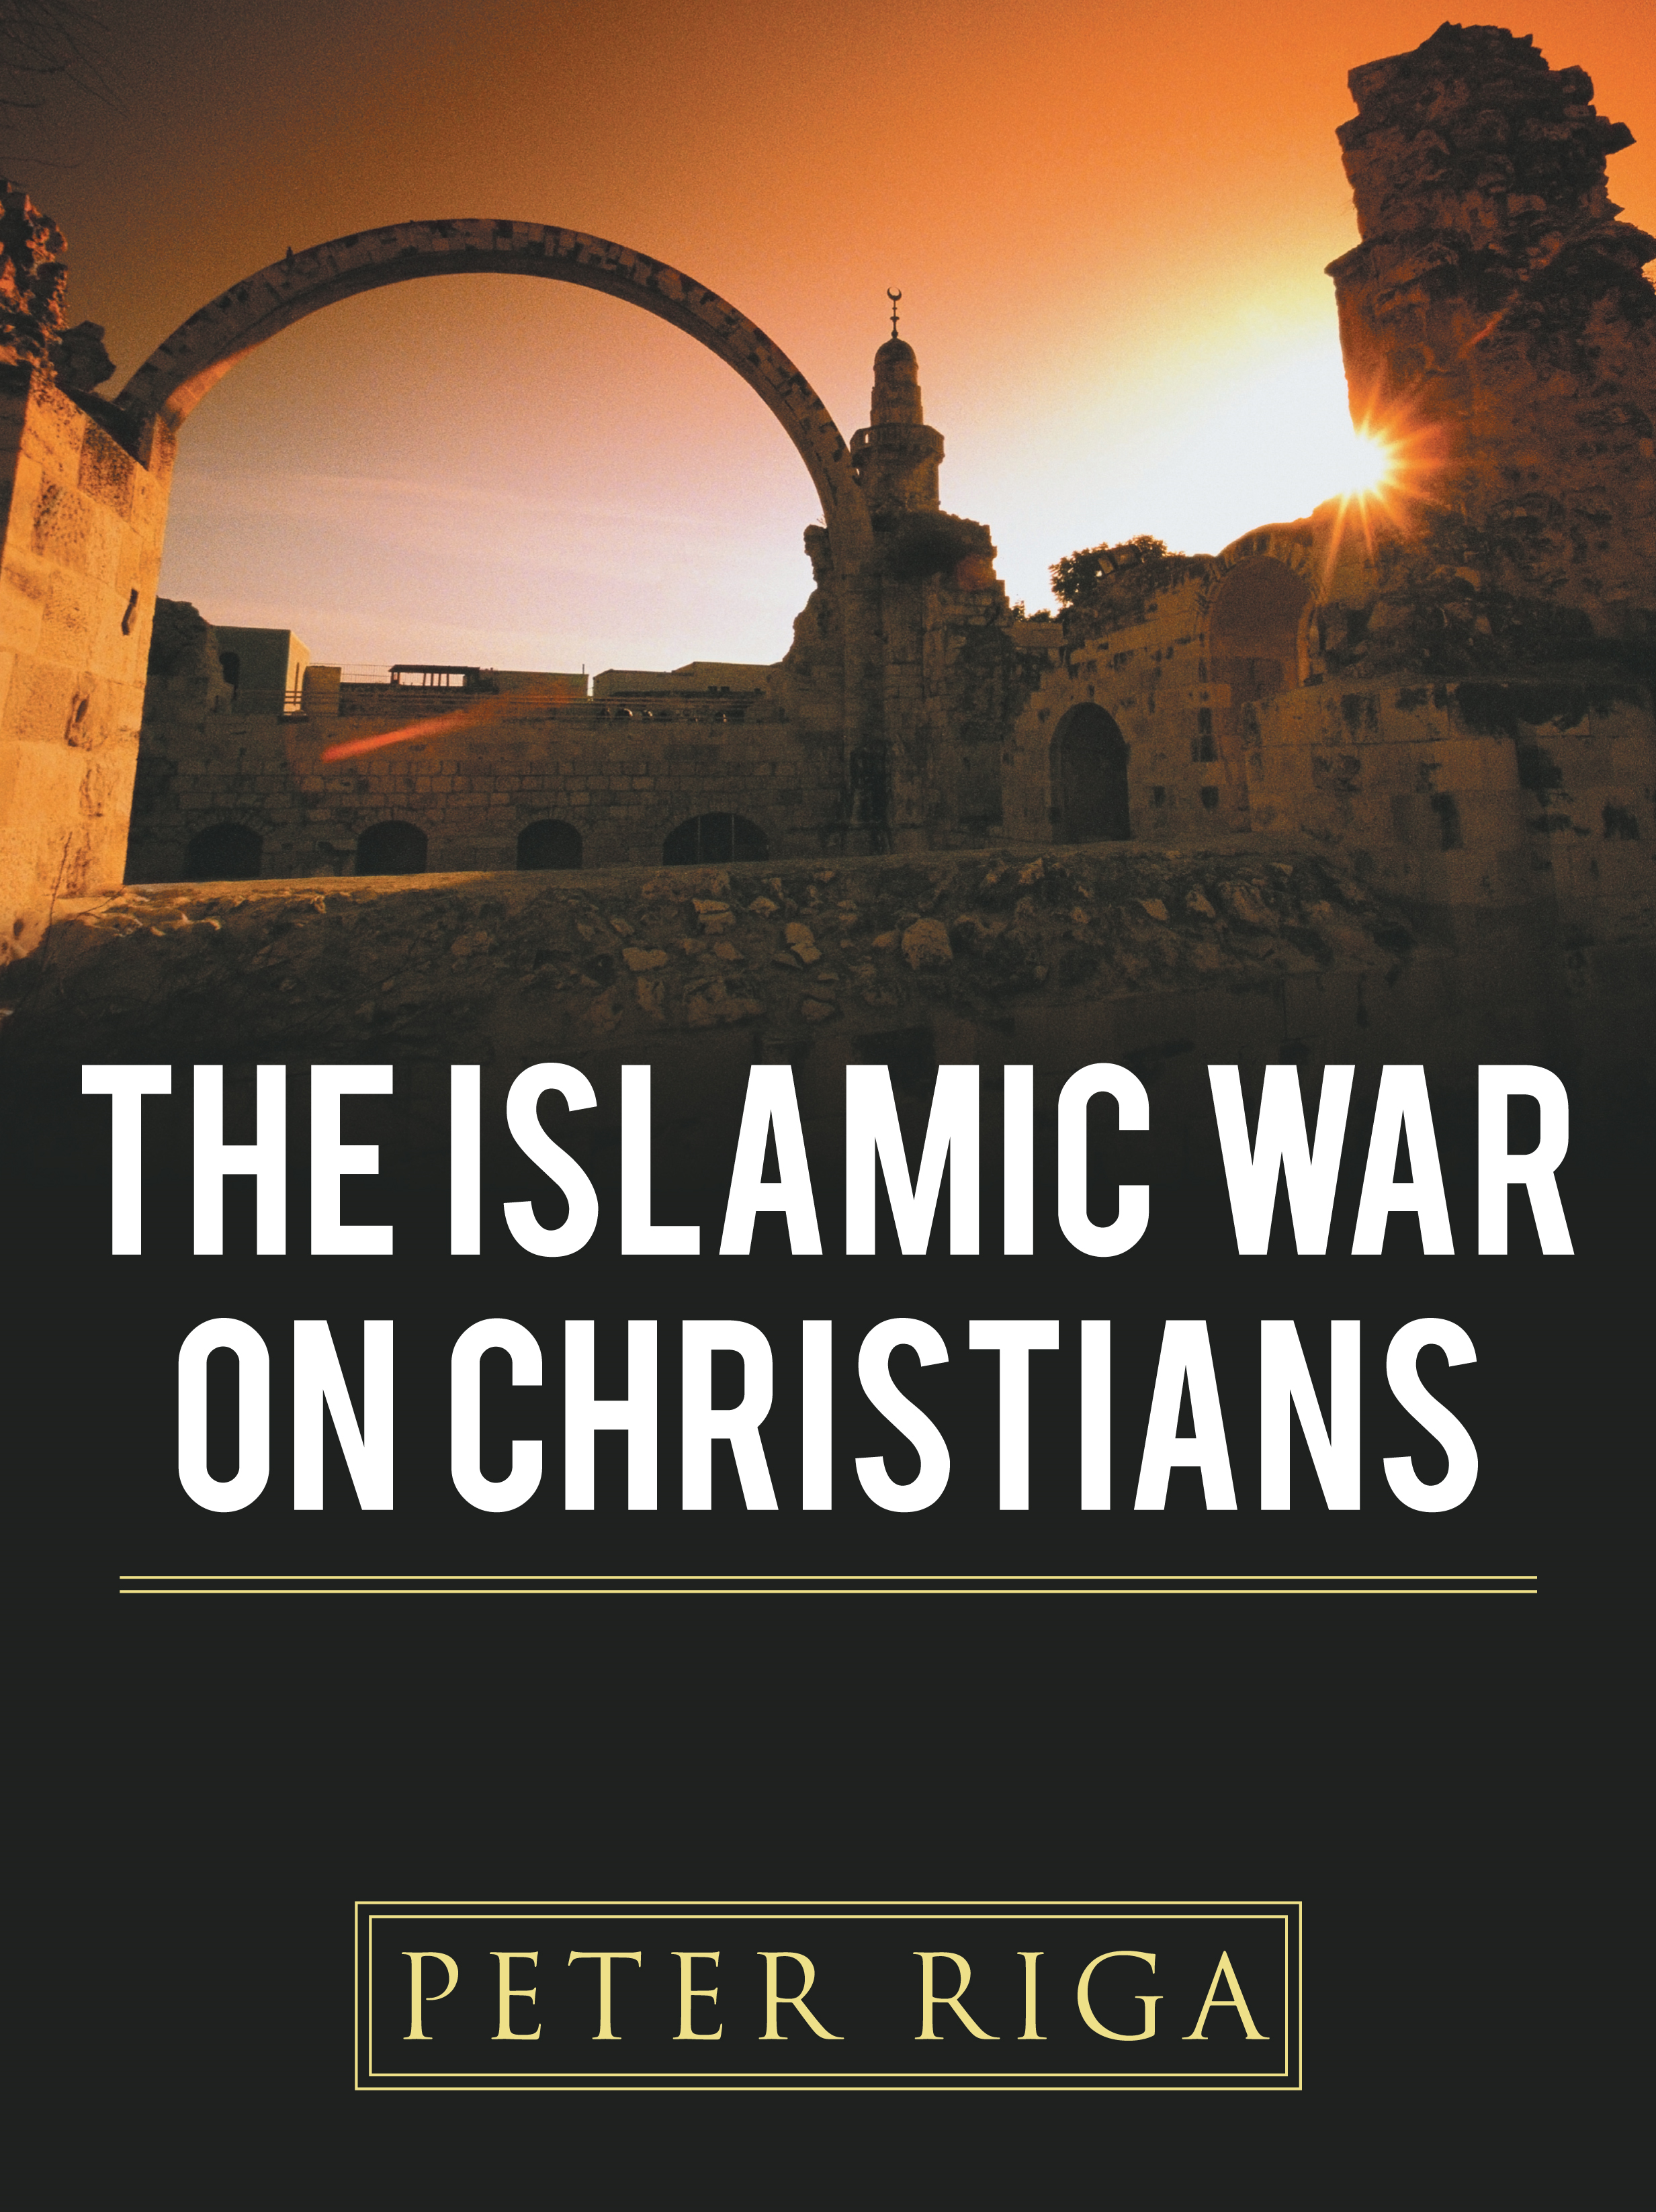 The Islamic War on Christians